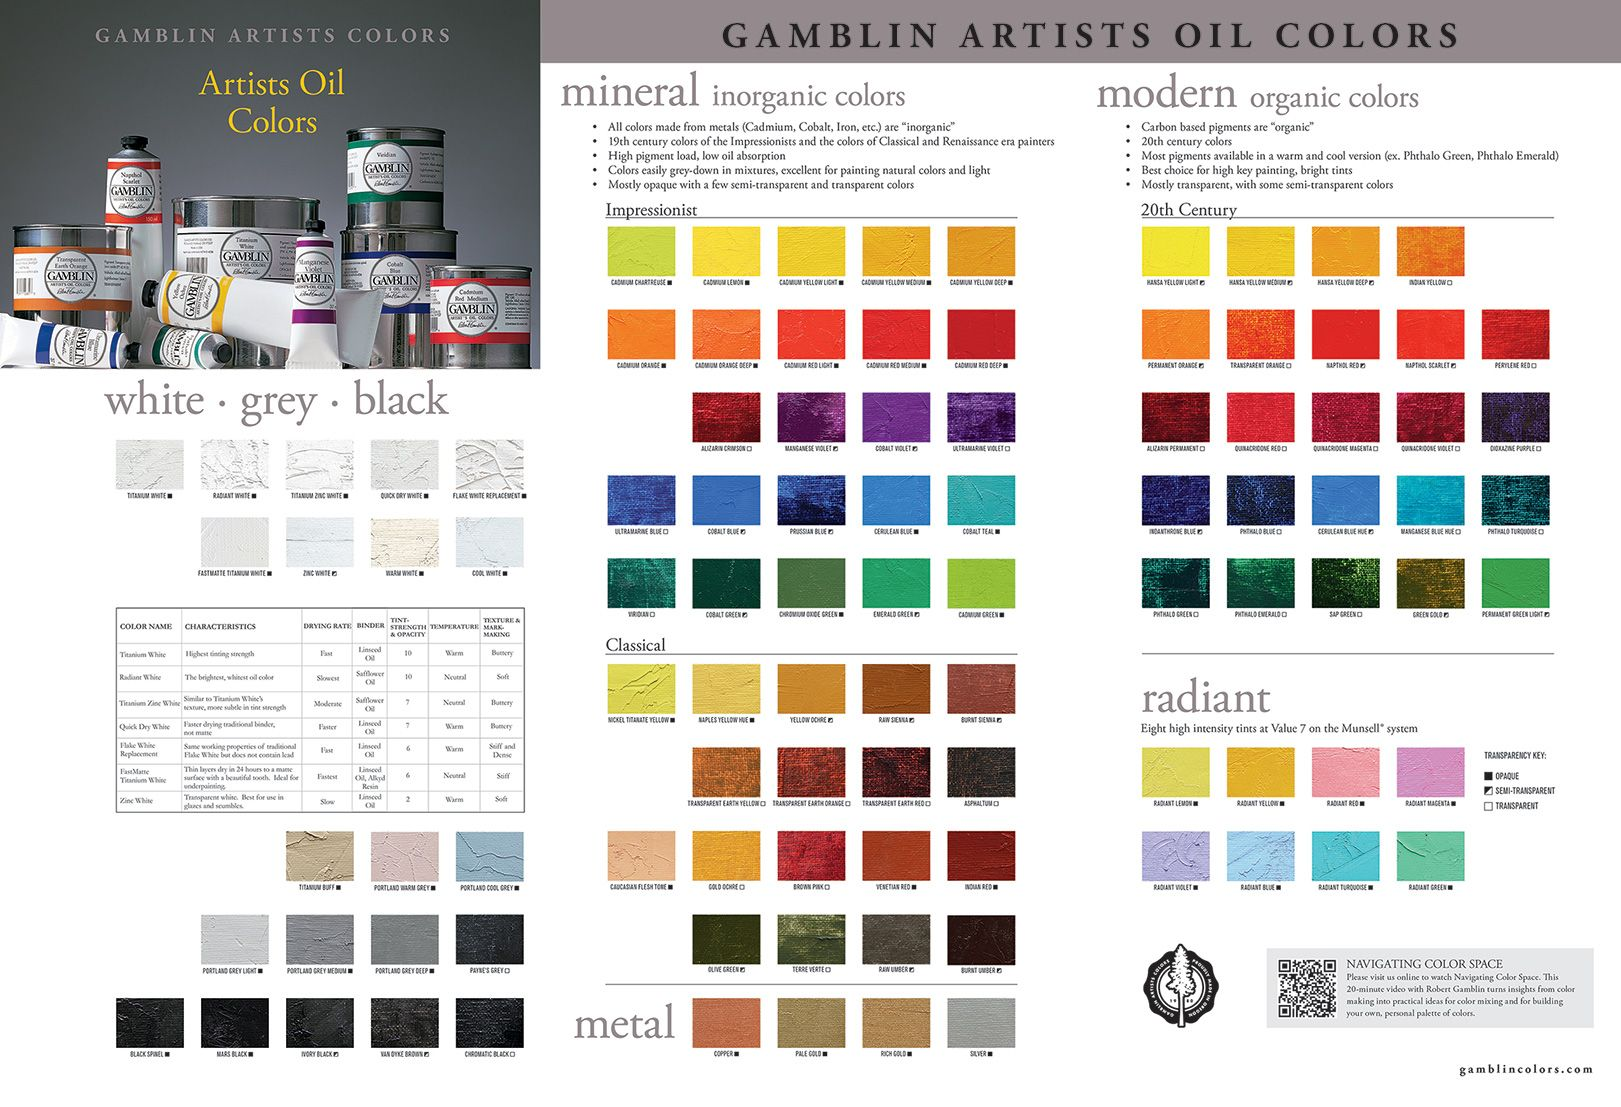 Gamblin Color Chart Mineral And Modern Colors Colorful Oil Painting Paint Color Chart Color Mixing Chart